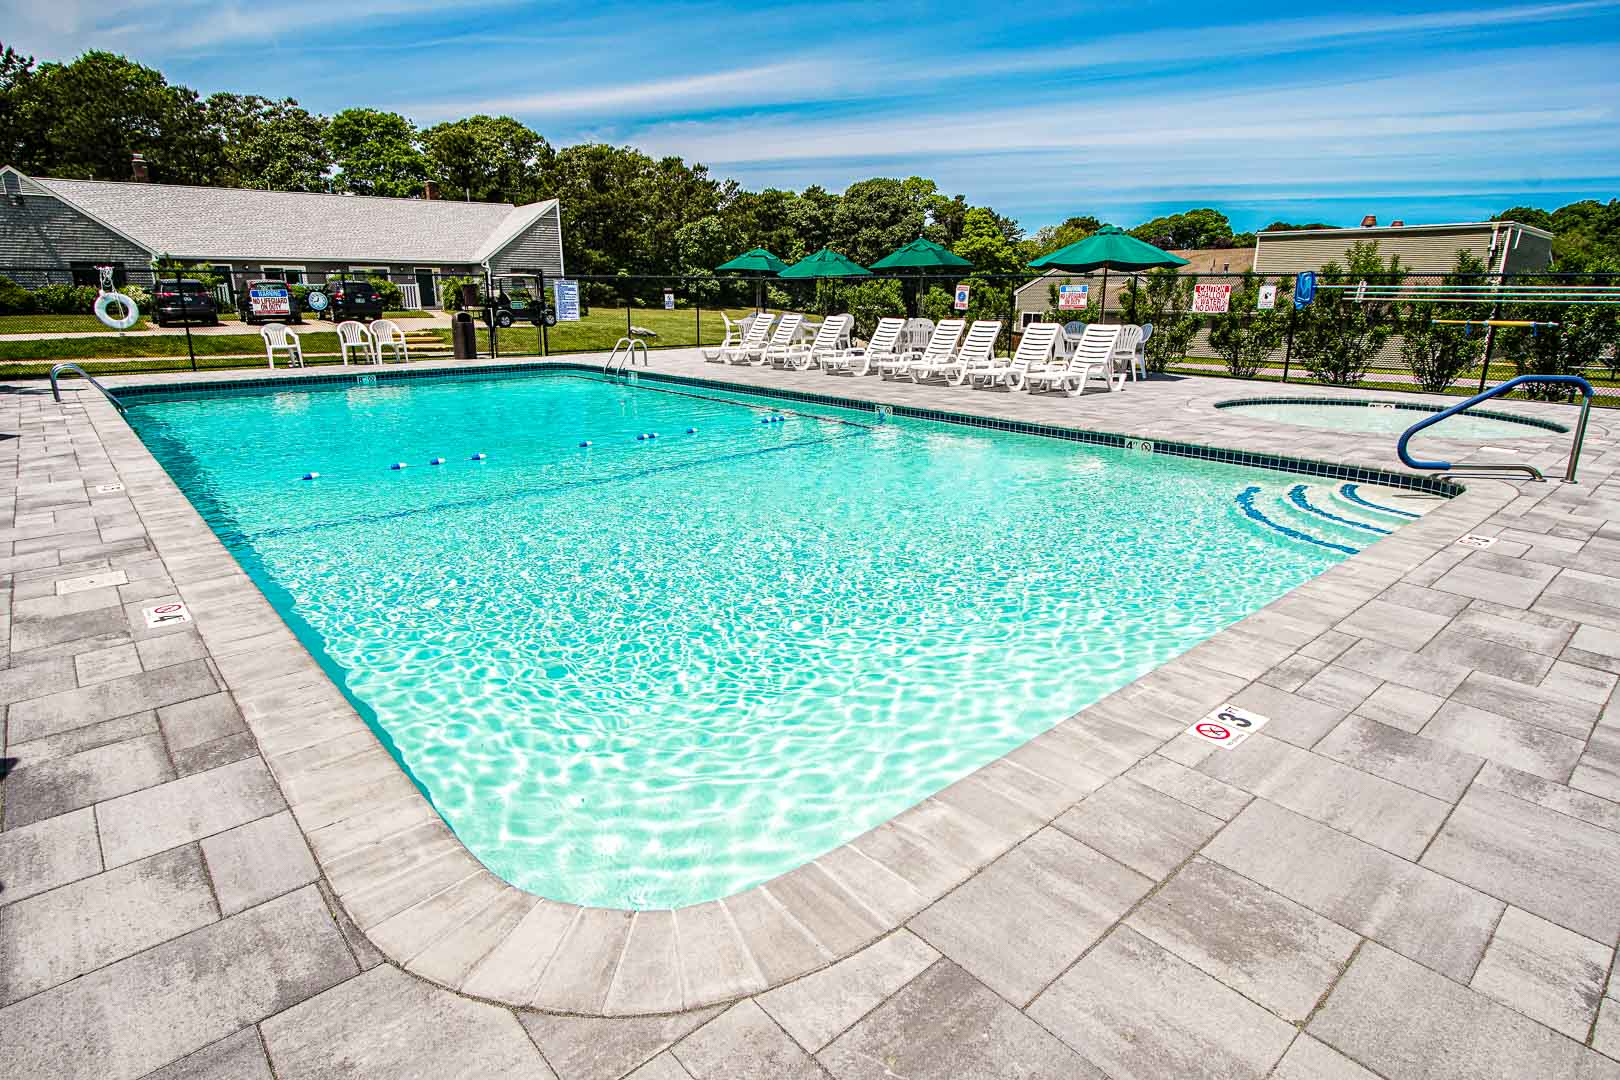 A crisp and clean outdoor swimming pool at VRI's Brewster Green Resort in Massachusetts.